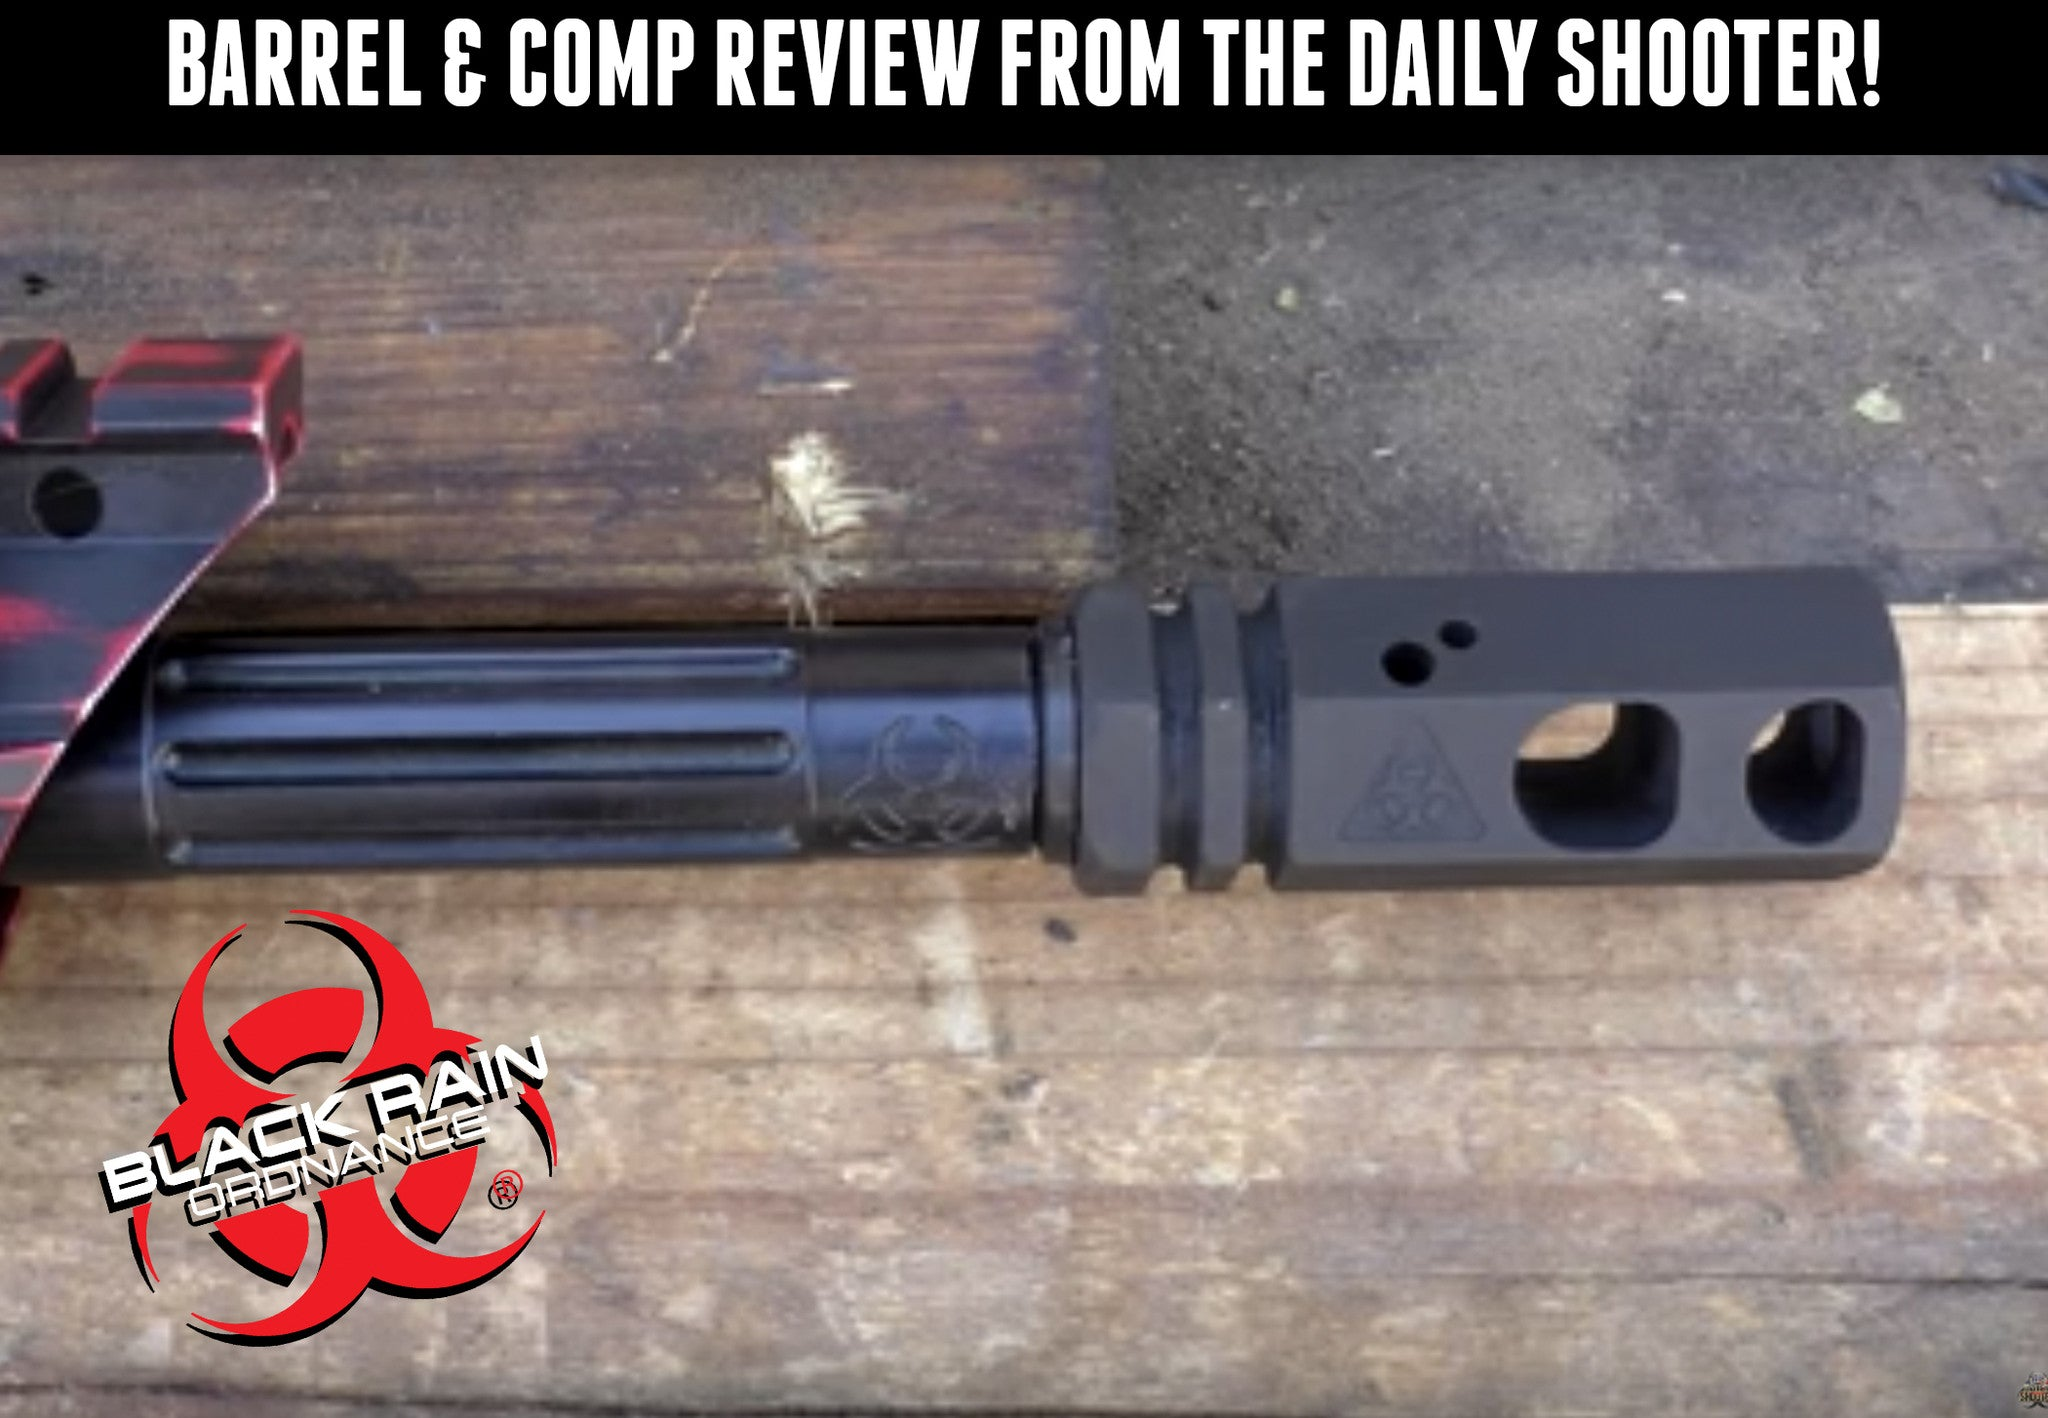 BLACK RAIN ORDNANCE BARREL & COMP REVIEW FROM THE DAILY SHOOTER.